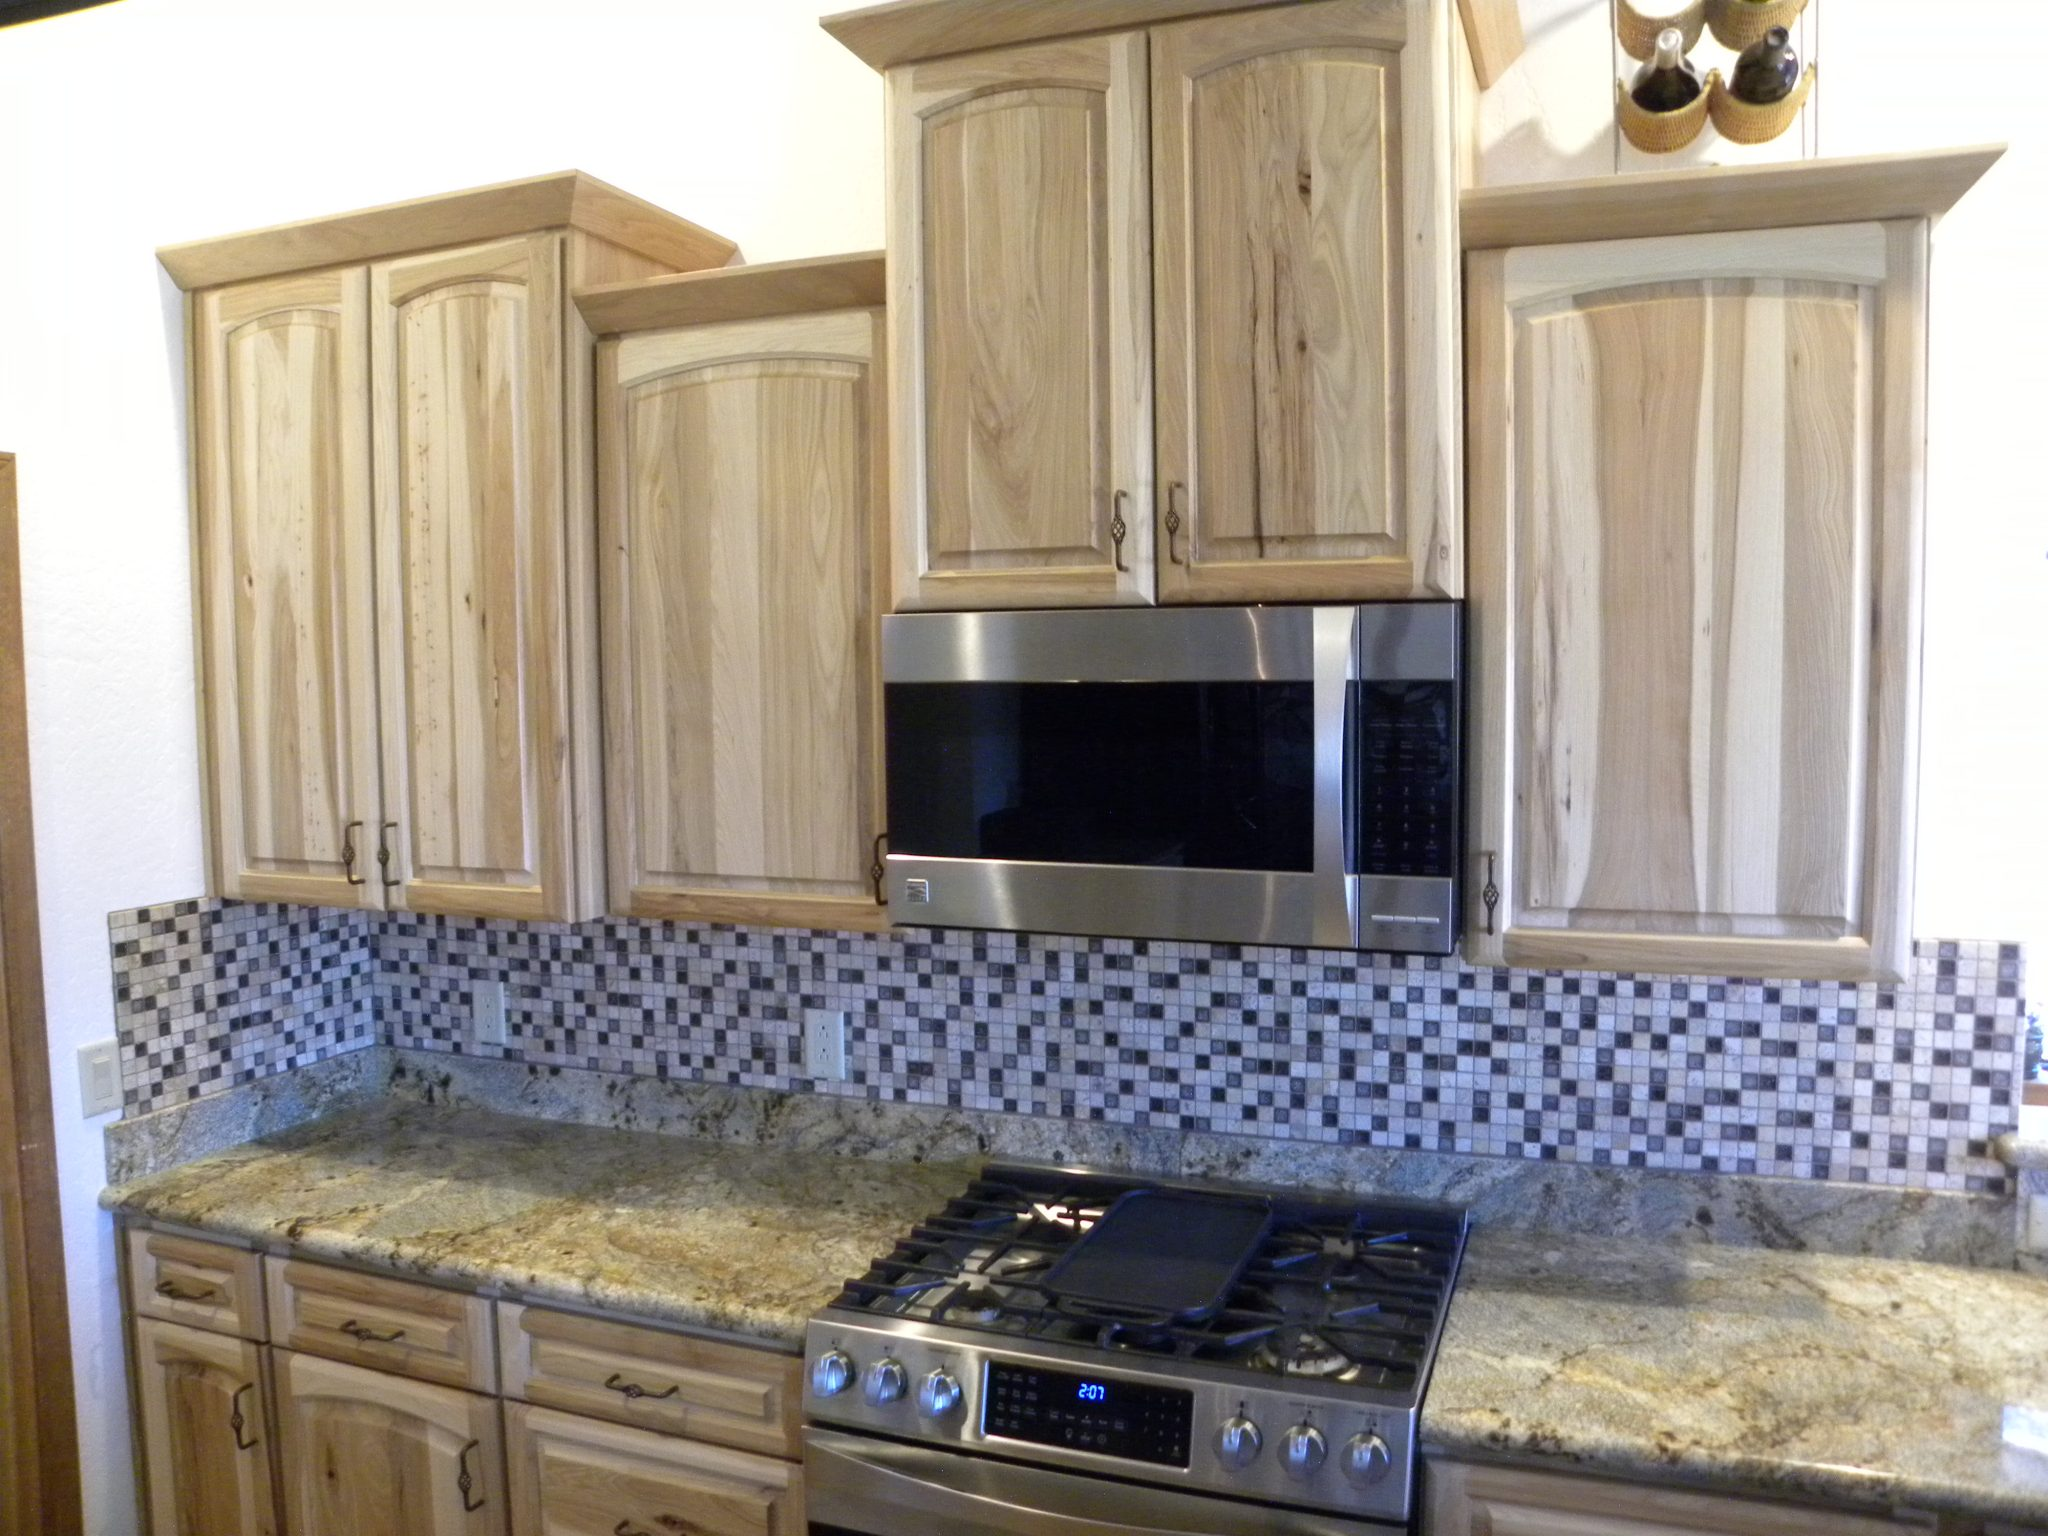 Custom designed kitchen with wooden cabinets and granite countertops